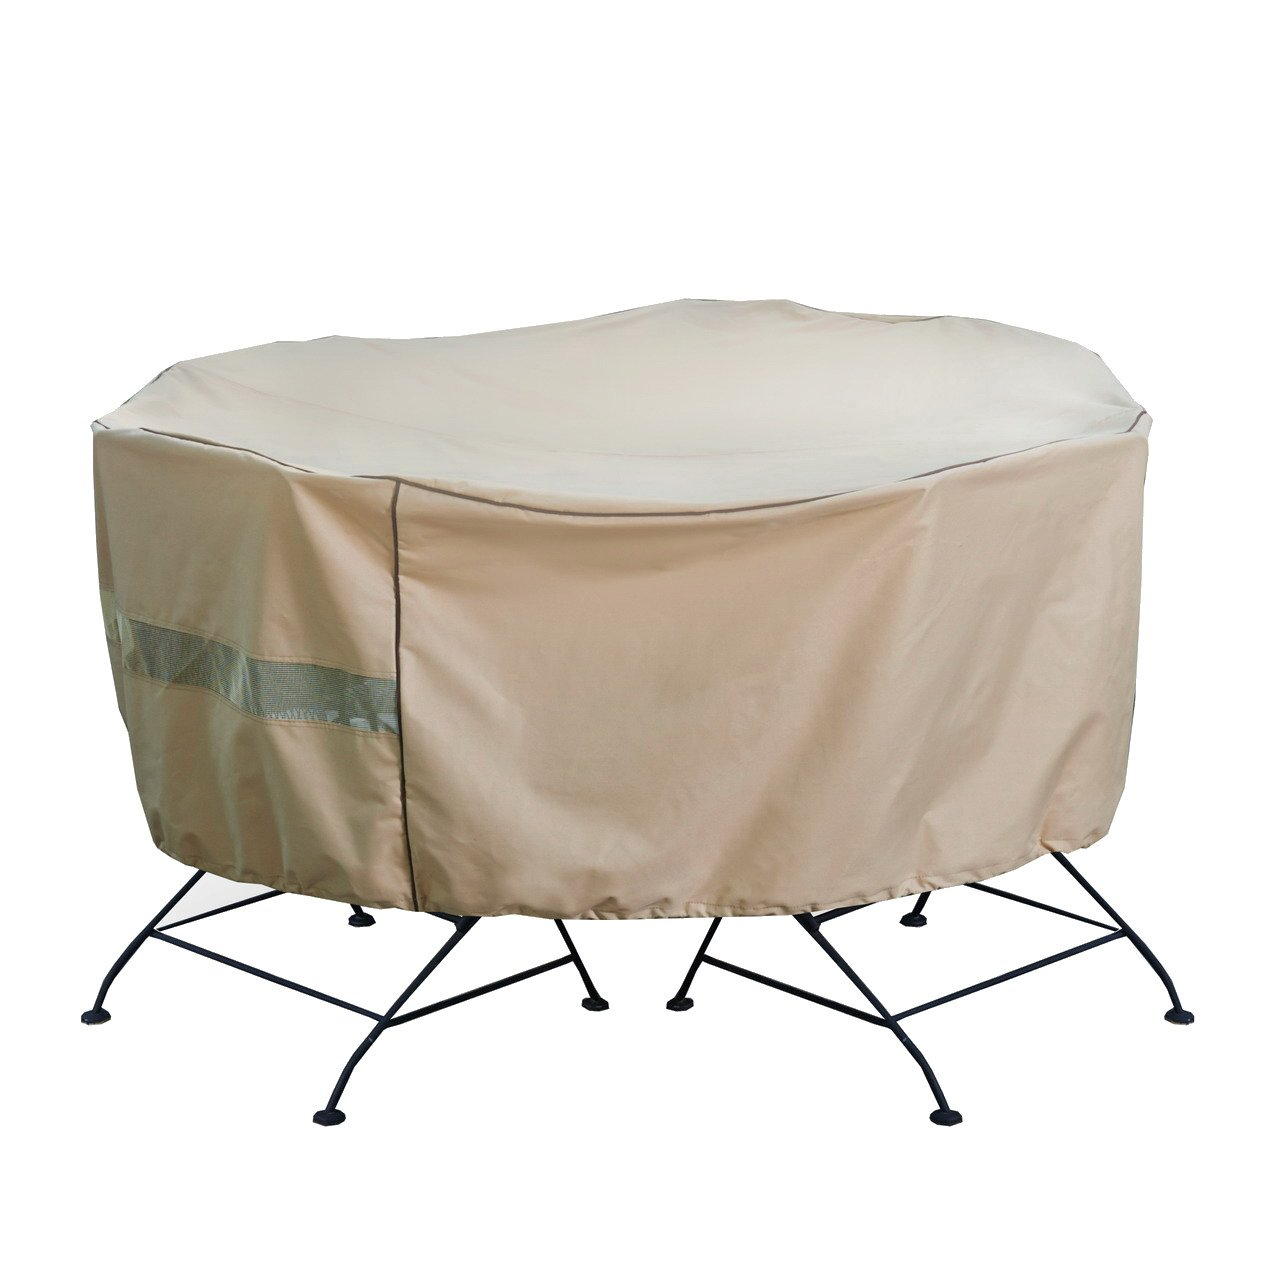 Seasons Select CVP01461 Round Table and Chair Set Cover, Almond